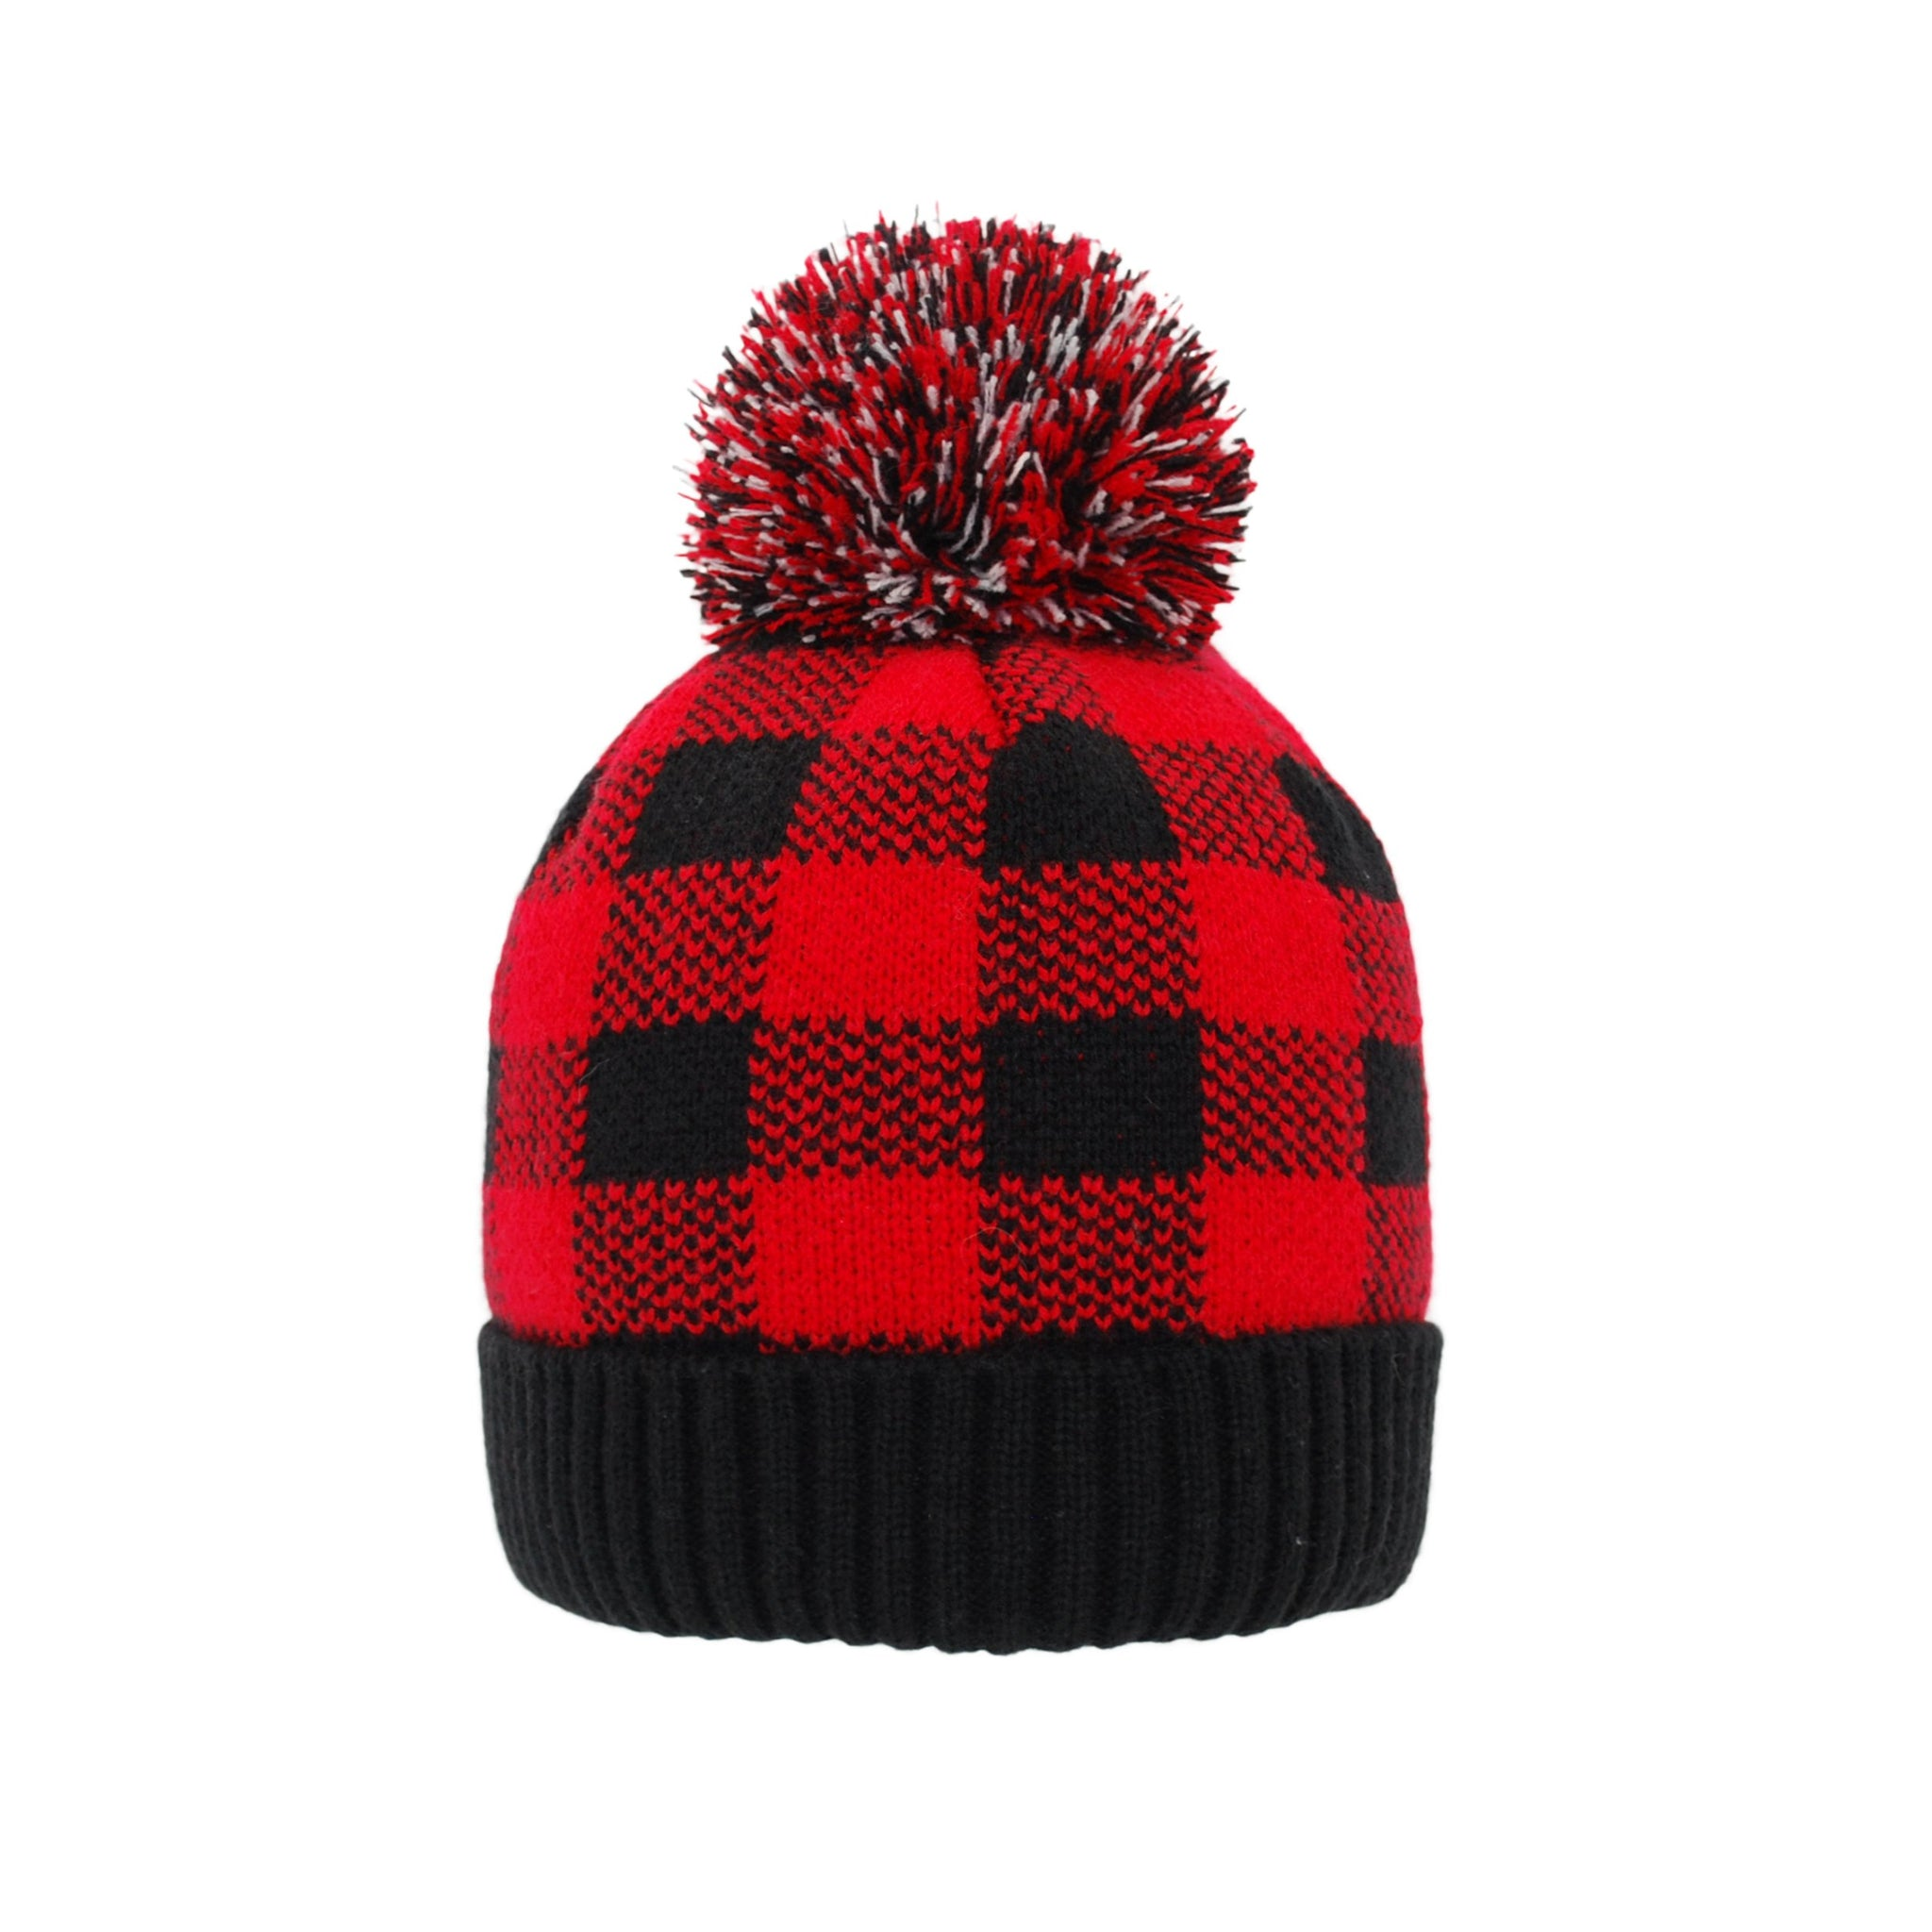 Lumberjack Red with Pom Pom - Hat Kids